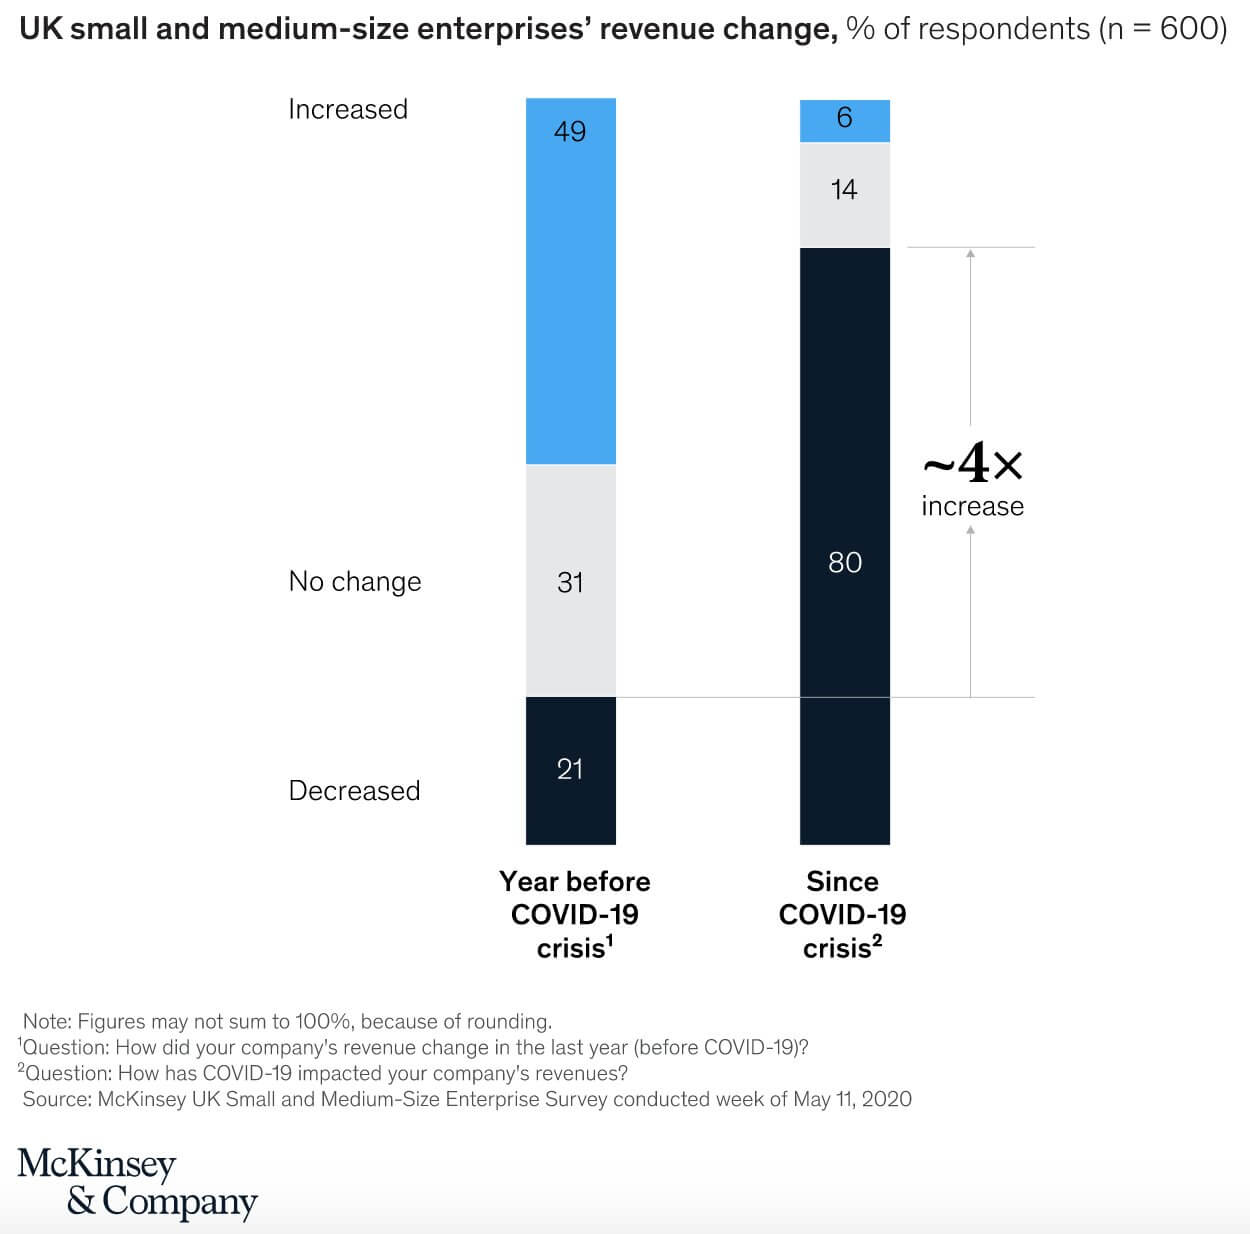 A graph of UK small and medium-size enterprises' revenue change based on a survey